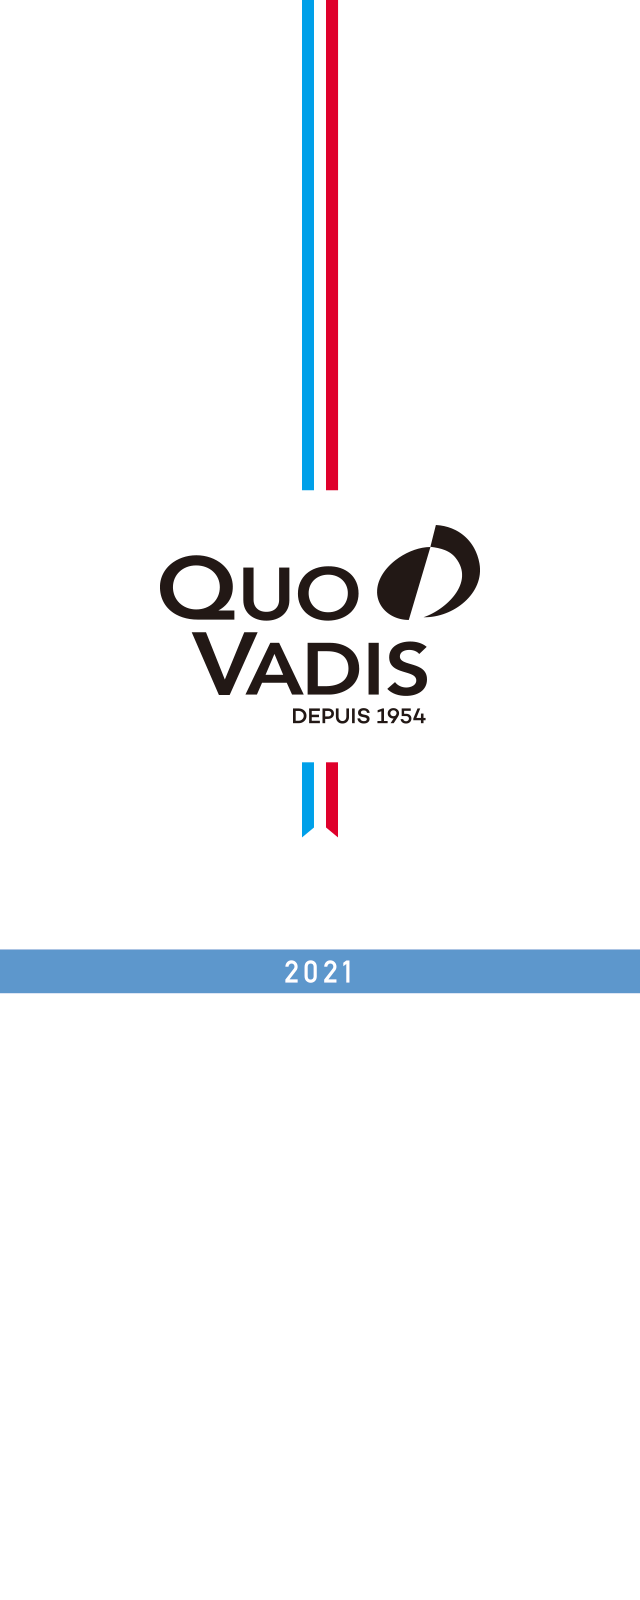 QUO VADIS DIARY COLLECTION 2019 APRIL to MARCH